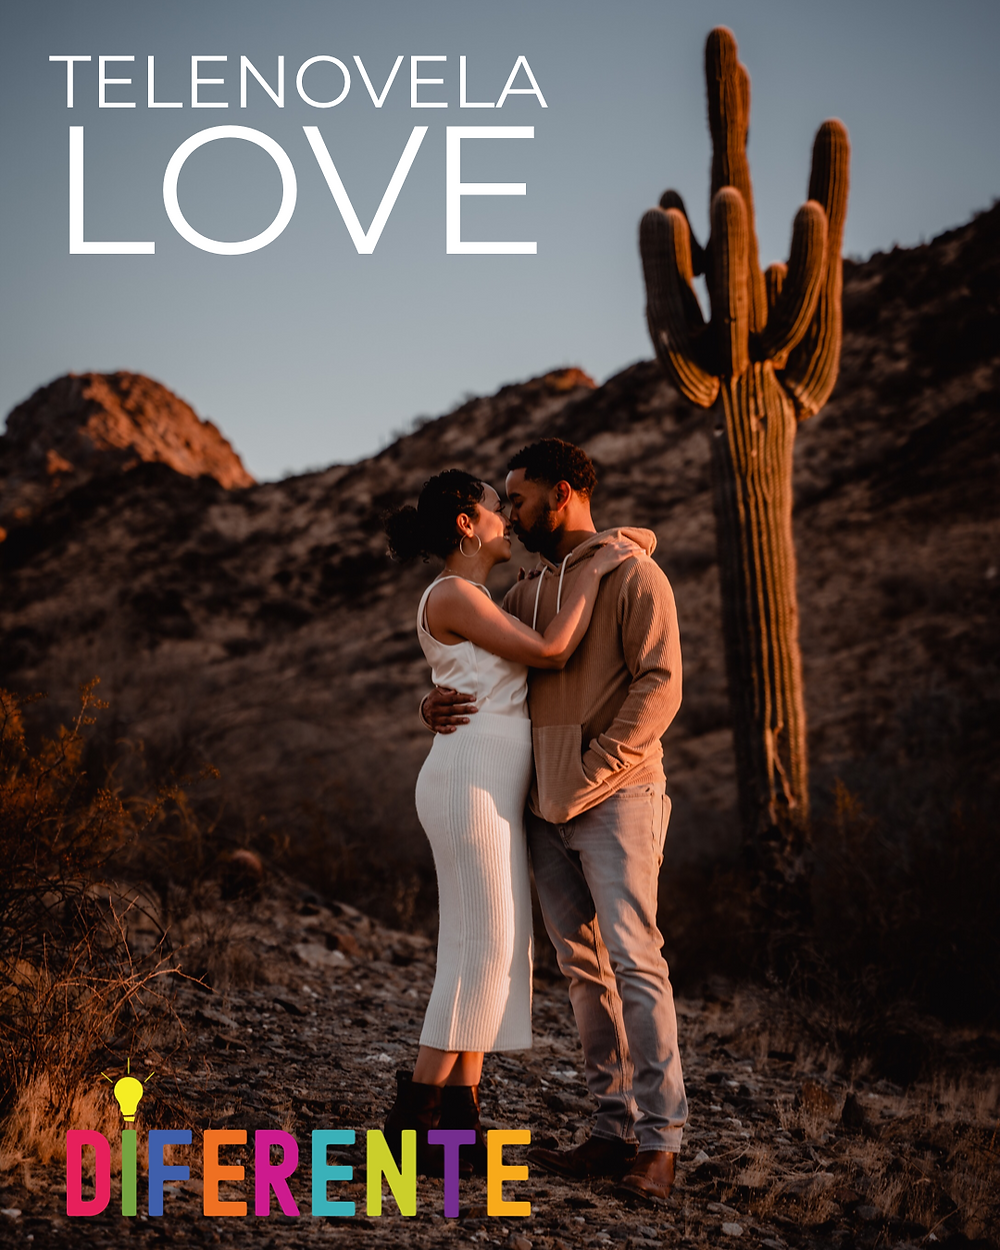 Maribel Quezada Smith, host of DIFERENTE, and her husband Doug Smith, embracing in front of a Saguaro cactus at a hiking trail in Phoenix, at sunset.